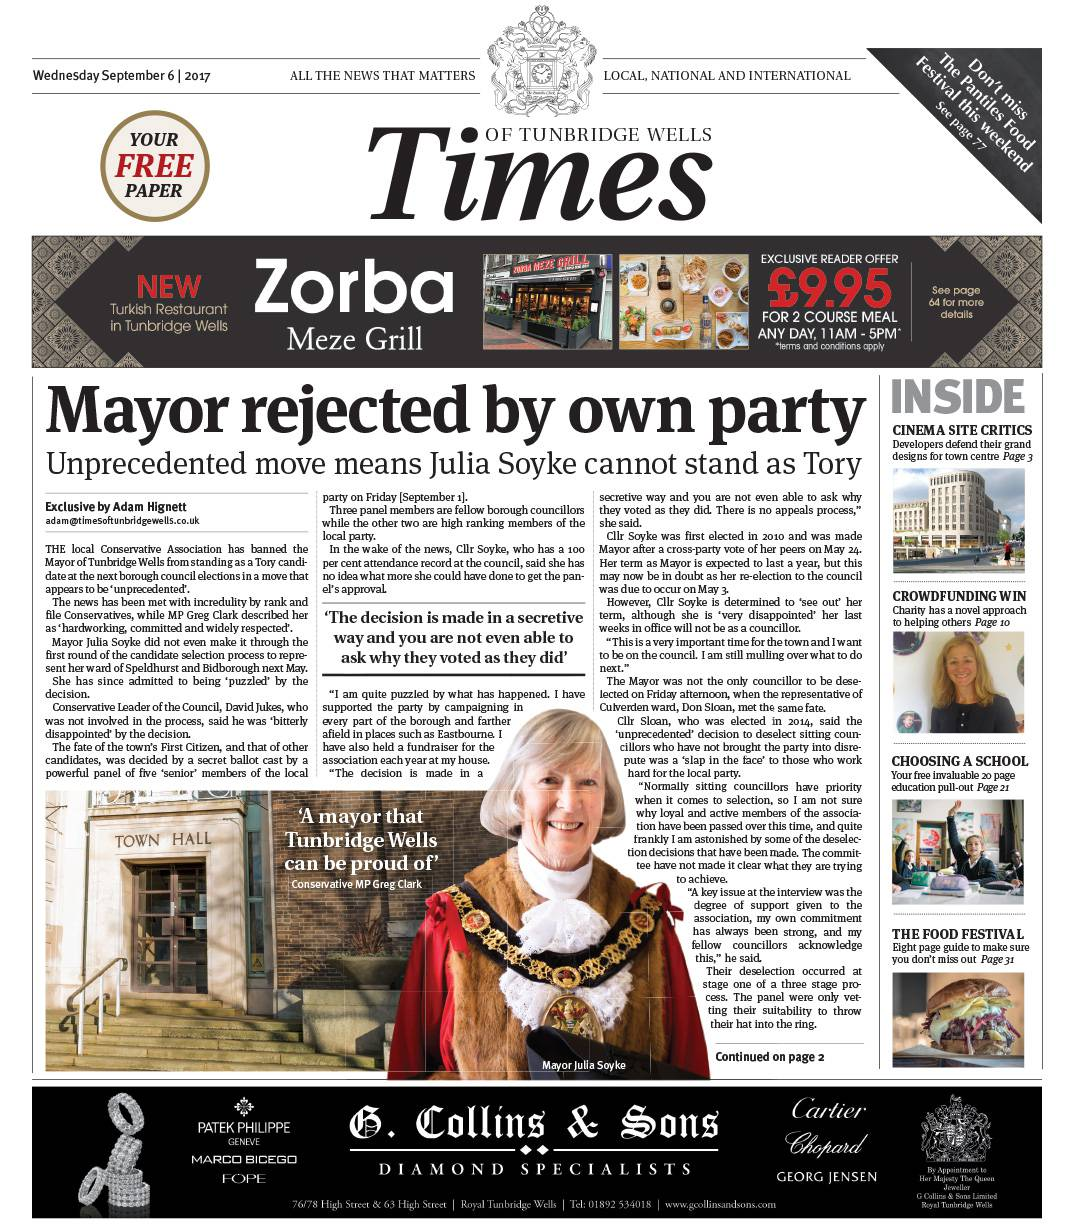 Read the Times of Tunbridge Wells 6th September 2017